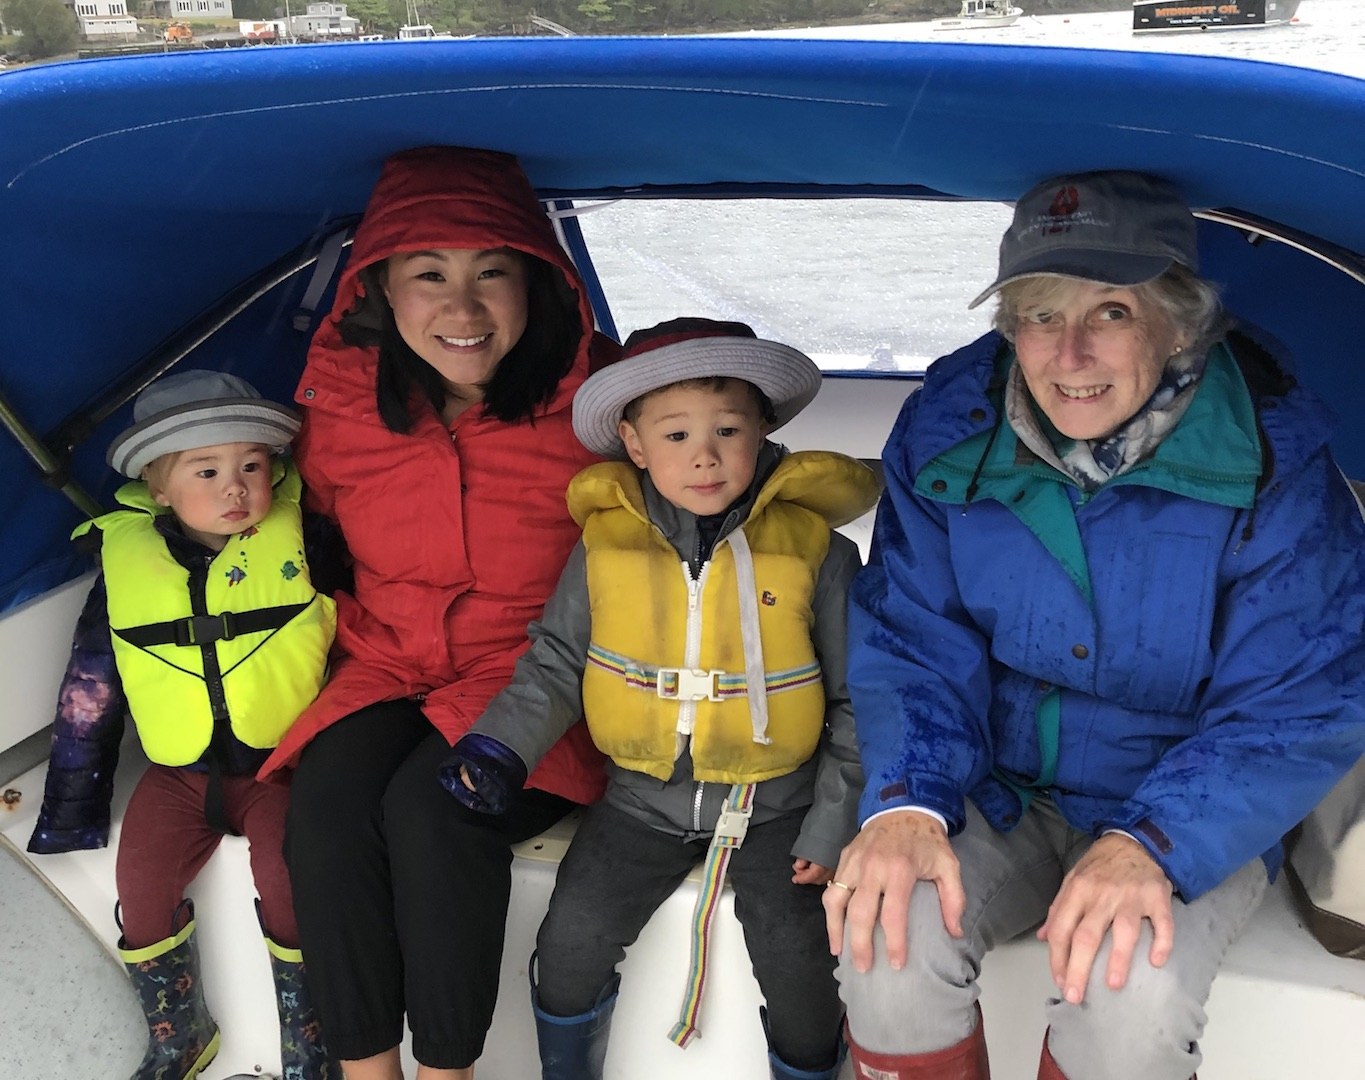 Ellen and her family use their boat for sailing around Casco Bay in Maine.